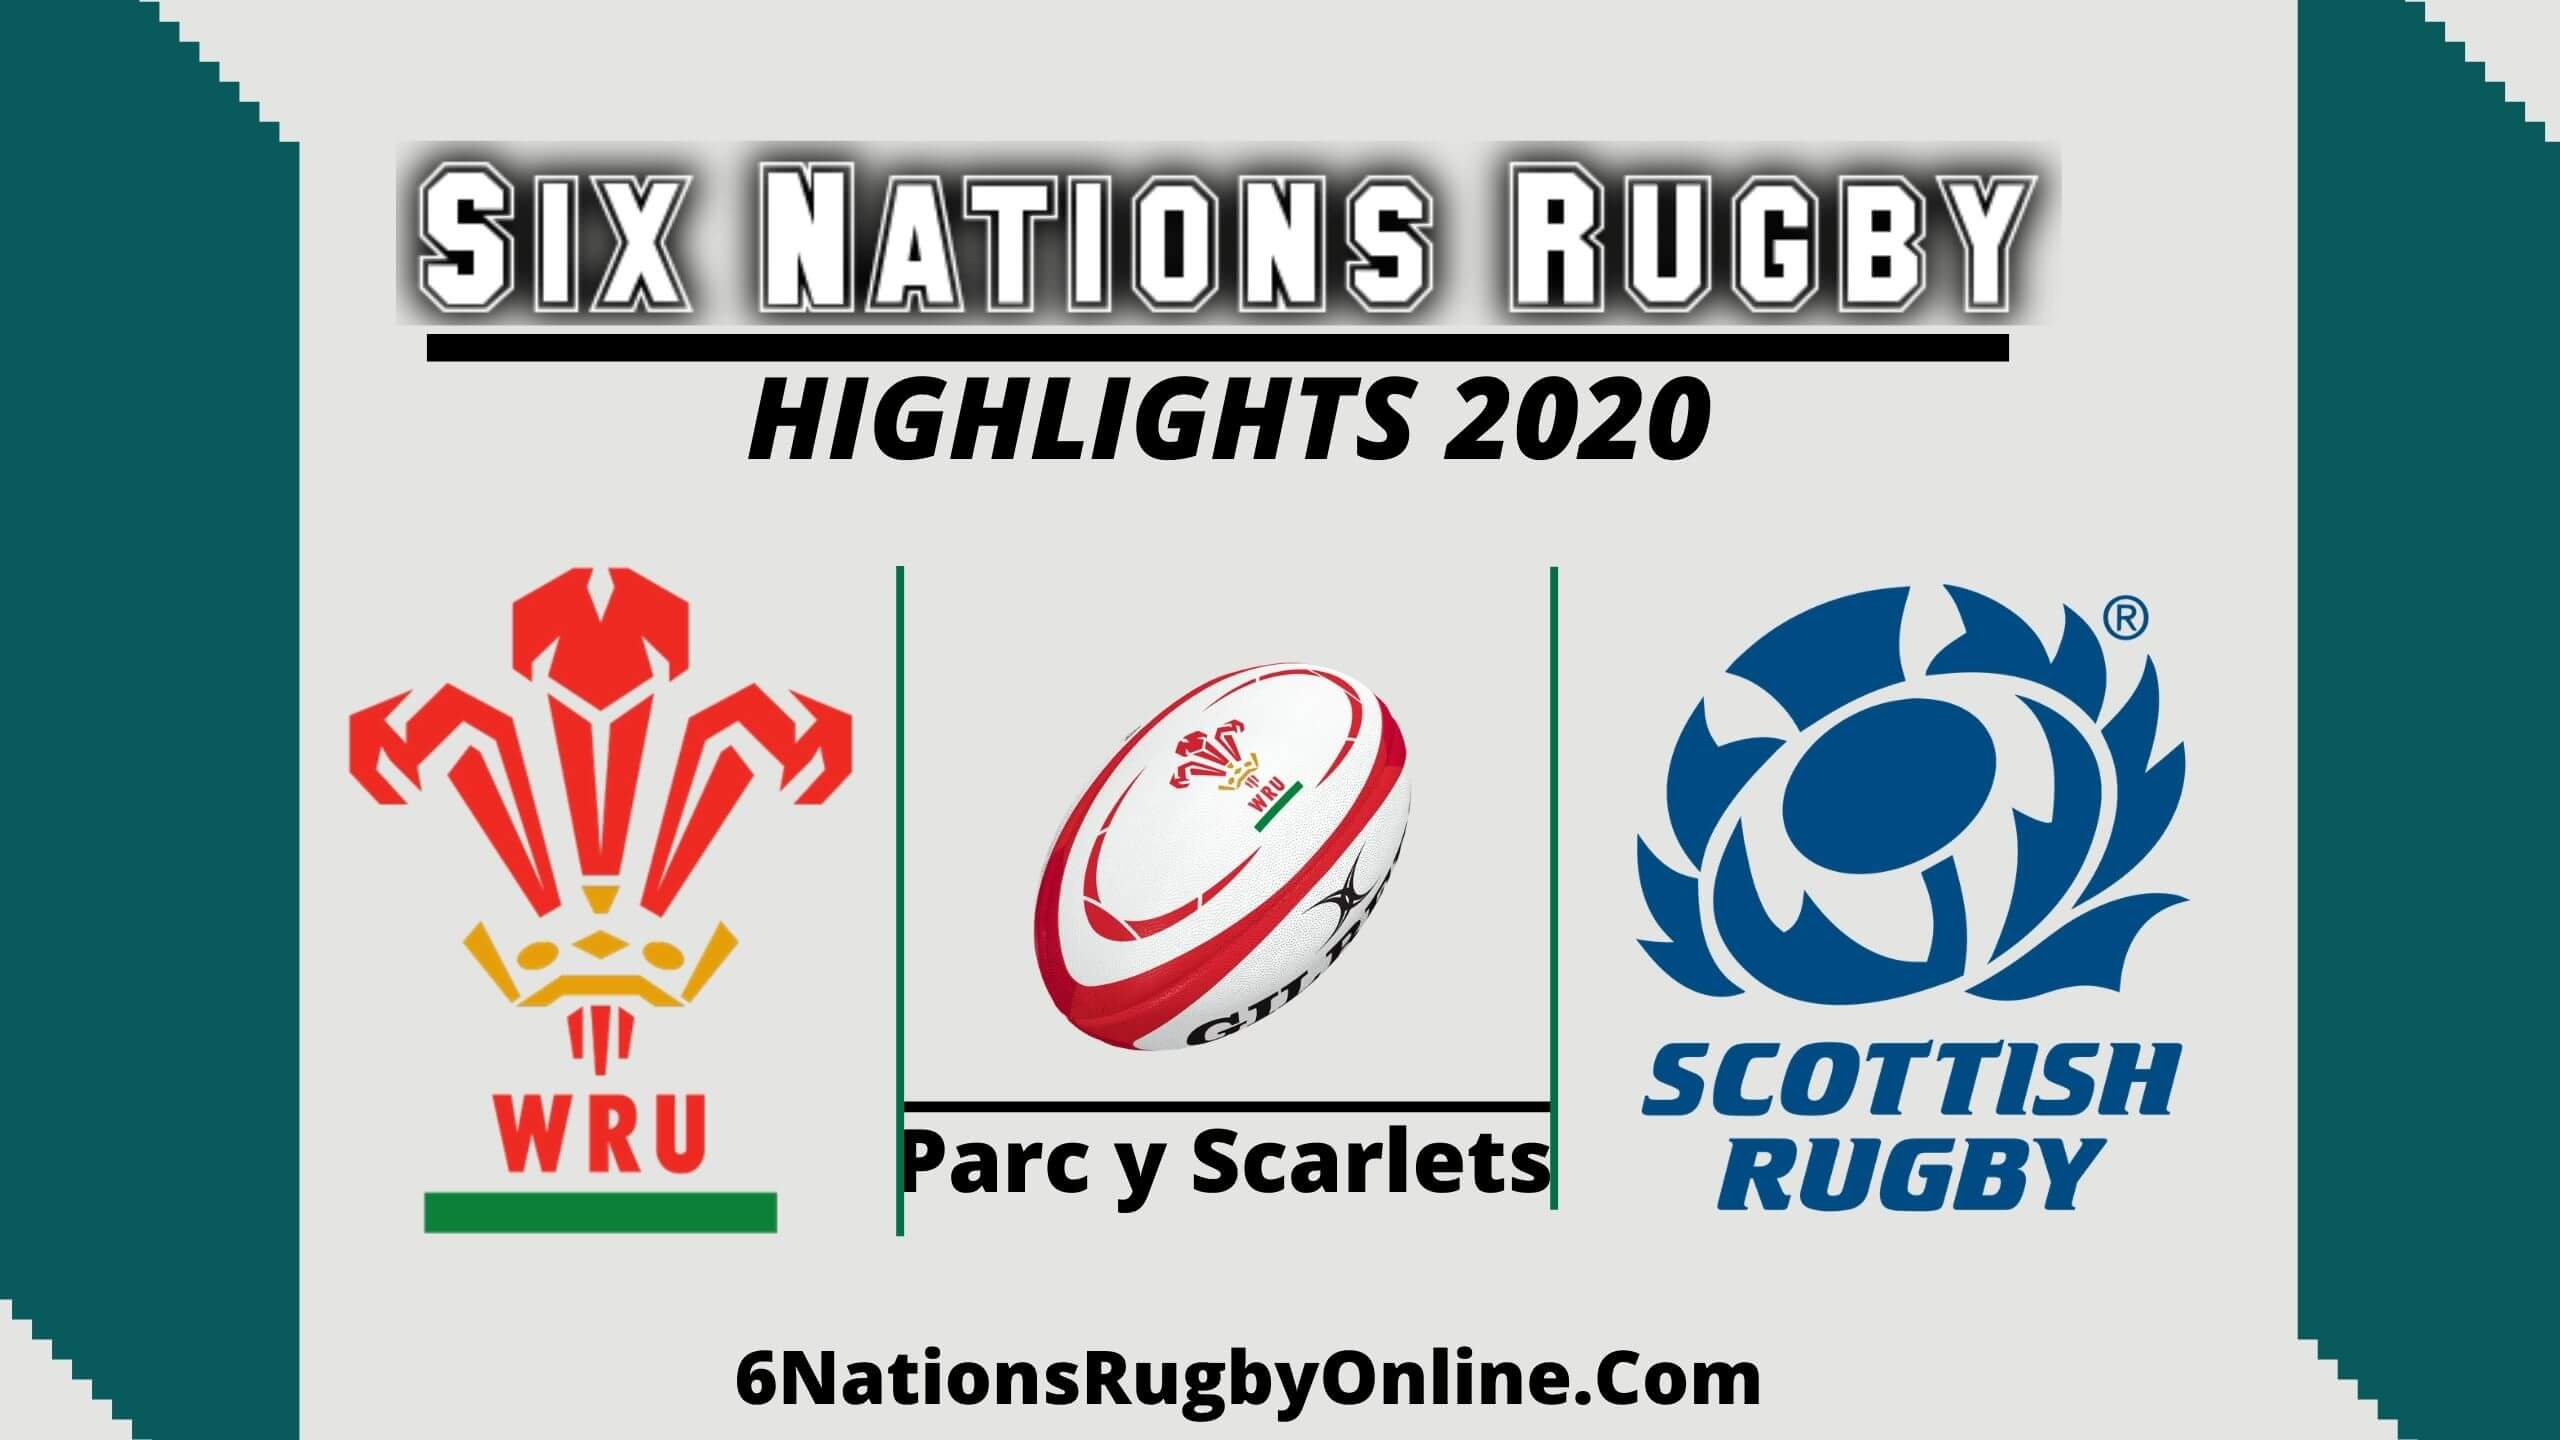 Wales vs Scotland Highlights 2020 Rd 5